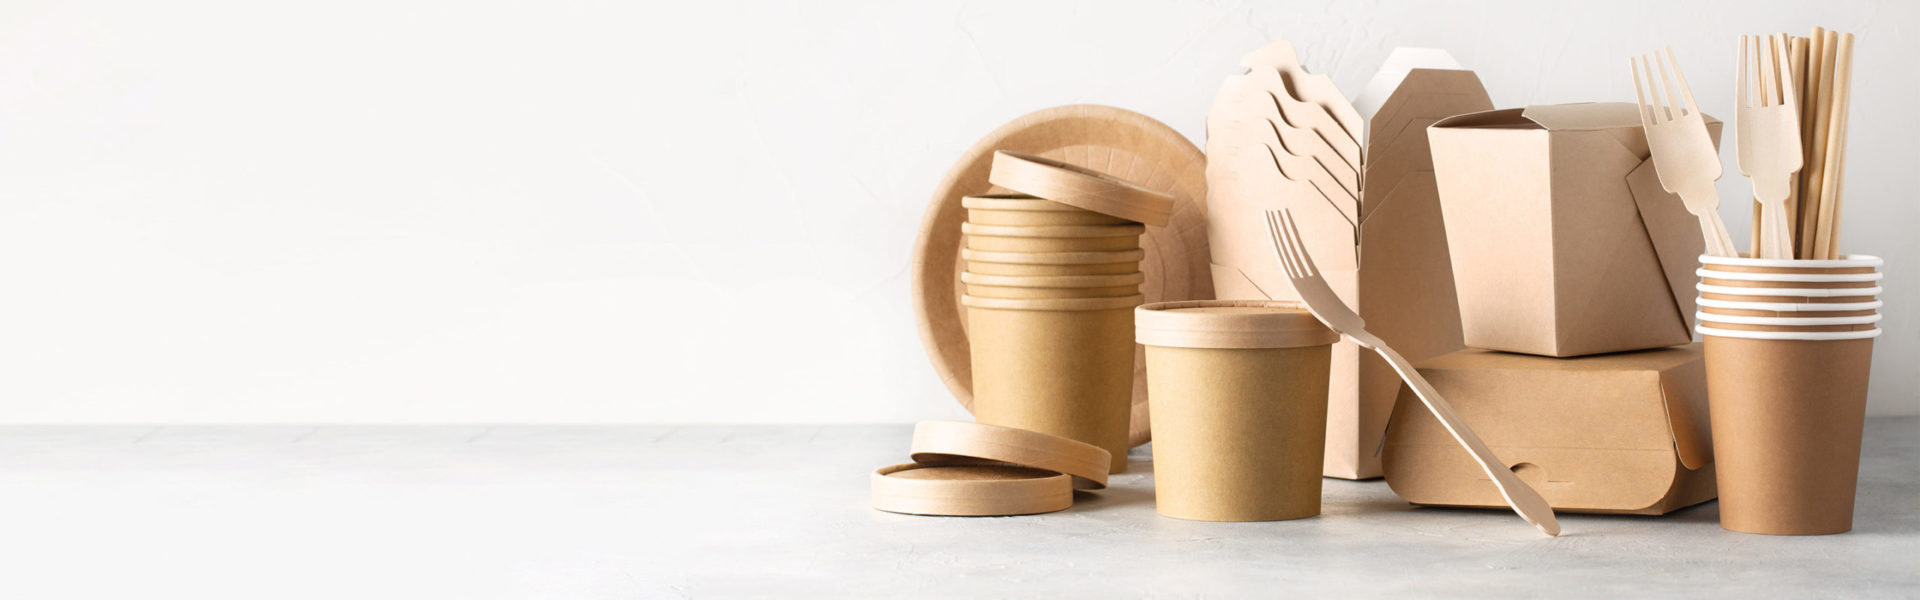 Sustainable kraft food containers and cutlery